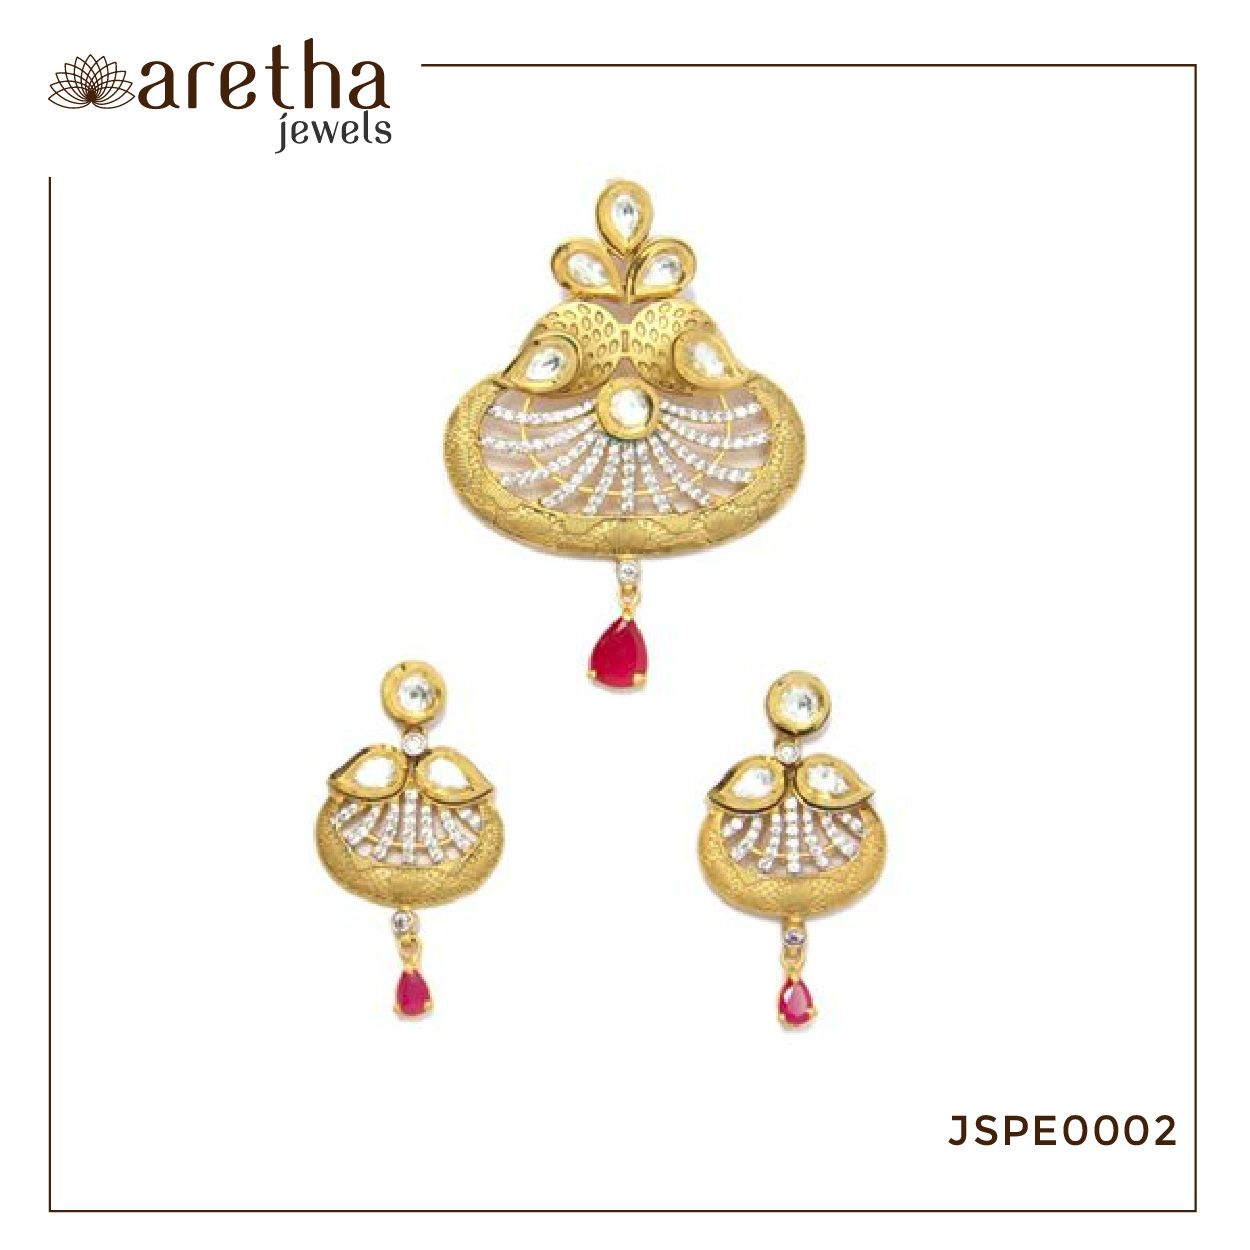 Bedecked with glinting white and red stones this captivating